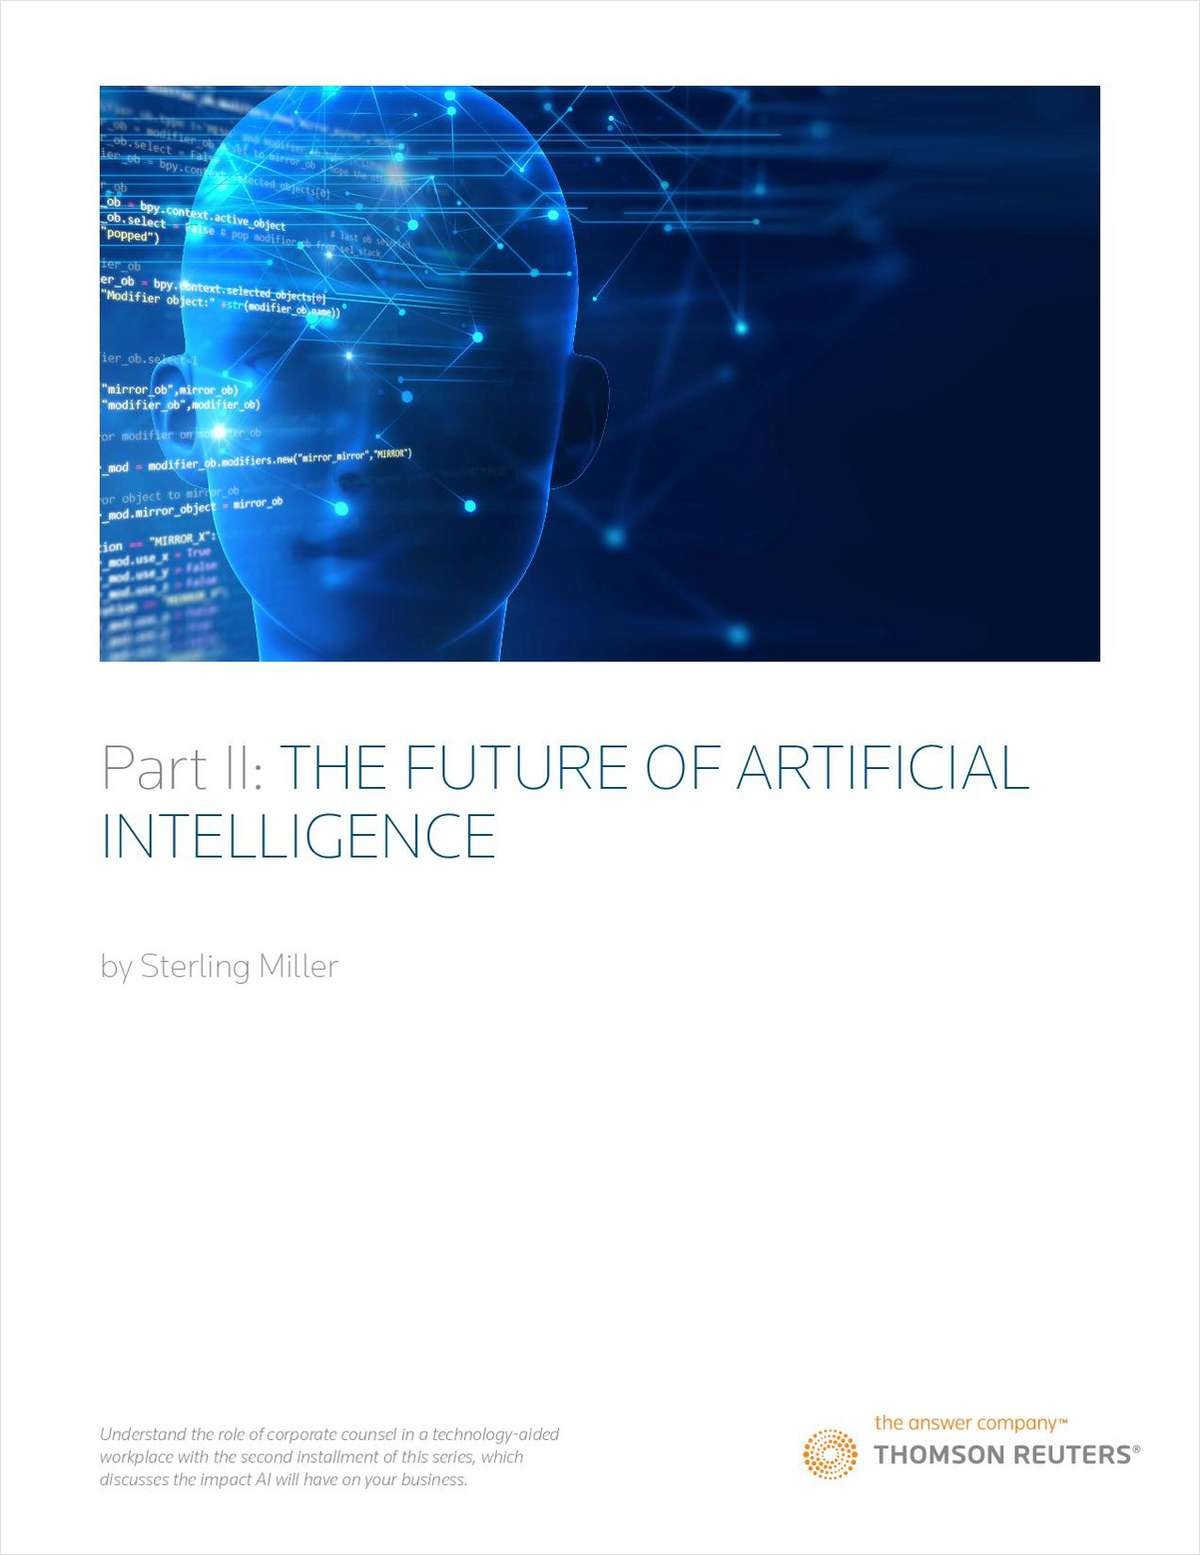 the failure of artificial intelligence essay What are the benefits and risks of artificial intelligence  of artificial intelligence essays by ai  of computing apparatus is therefore doomed to failure.